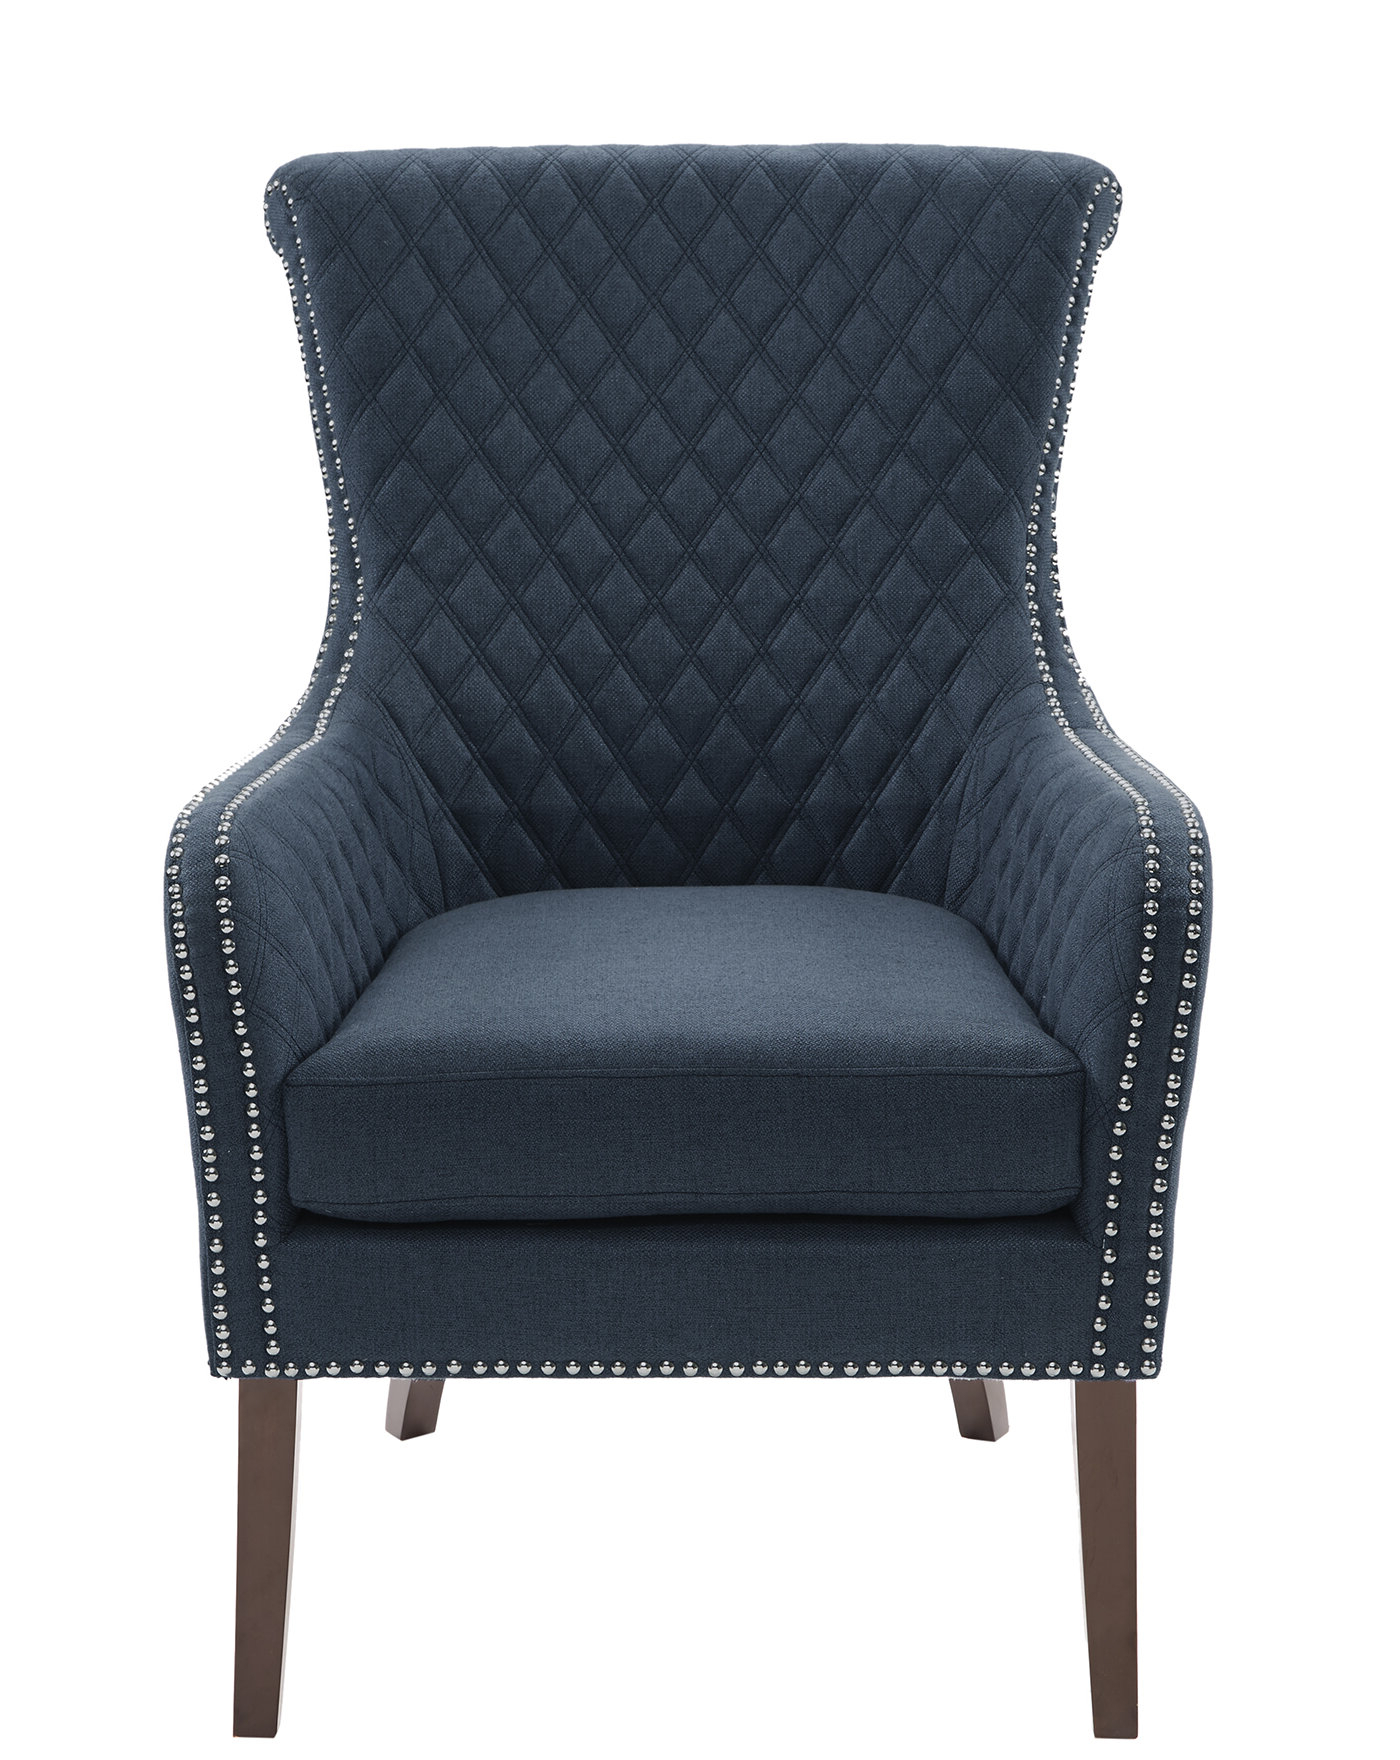 Busti Wingback Chair Throughout Newest Busti Wingback Chairs (View 2 of 20)